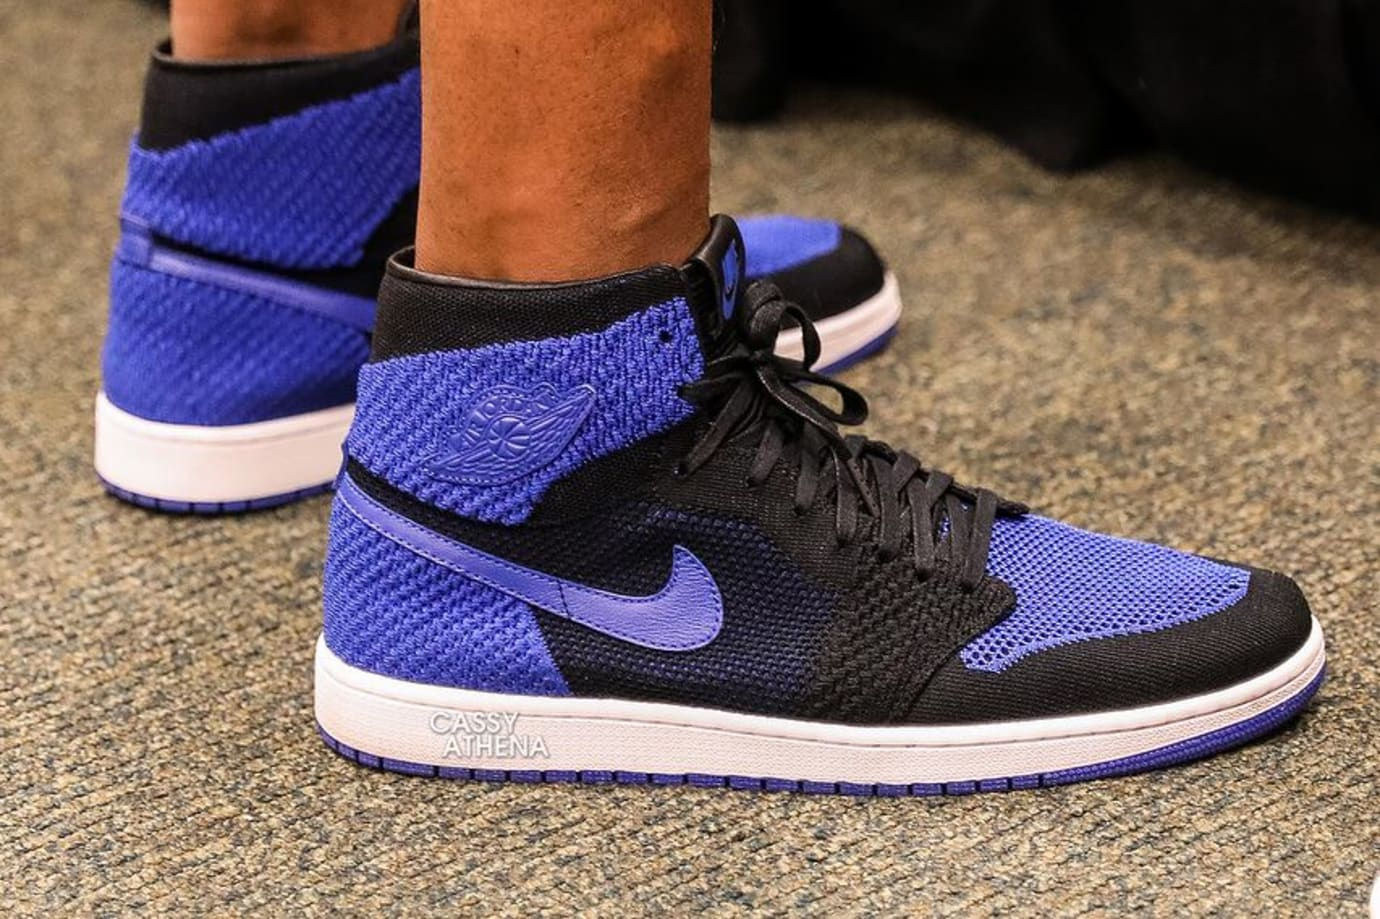 Air Jordan 1 Flyknit Royal On-Foot 919704-006